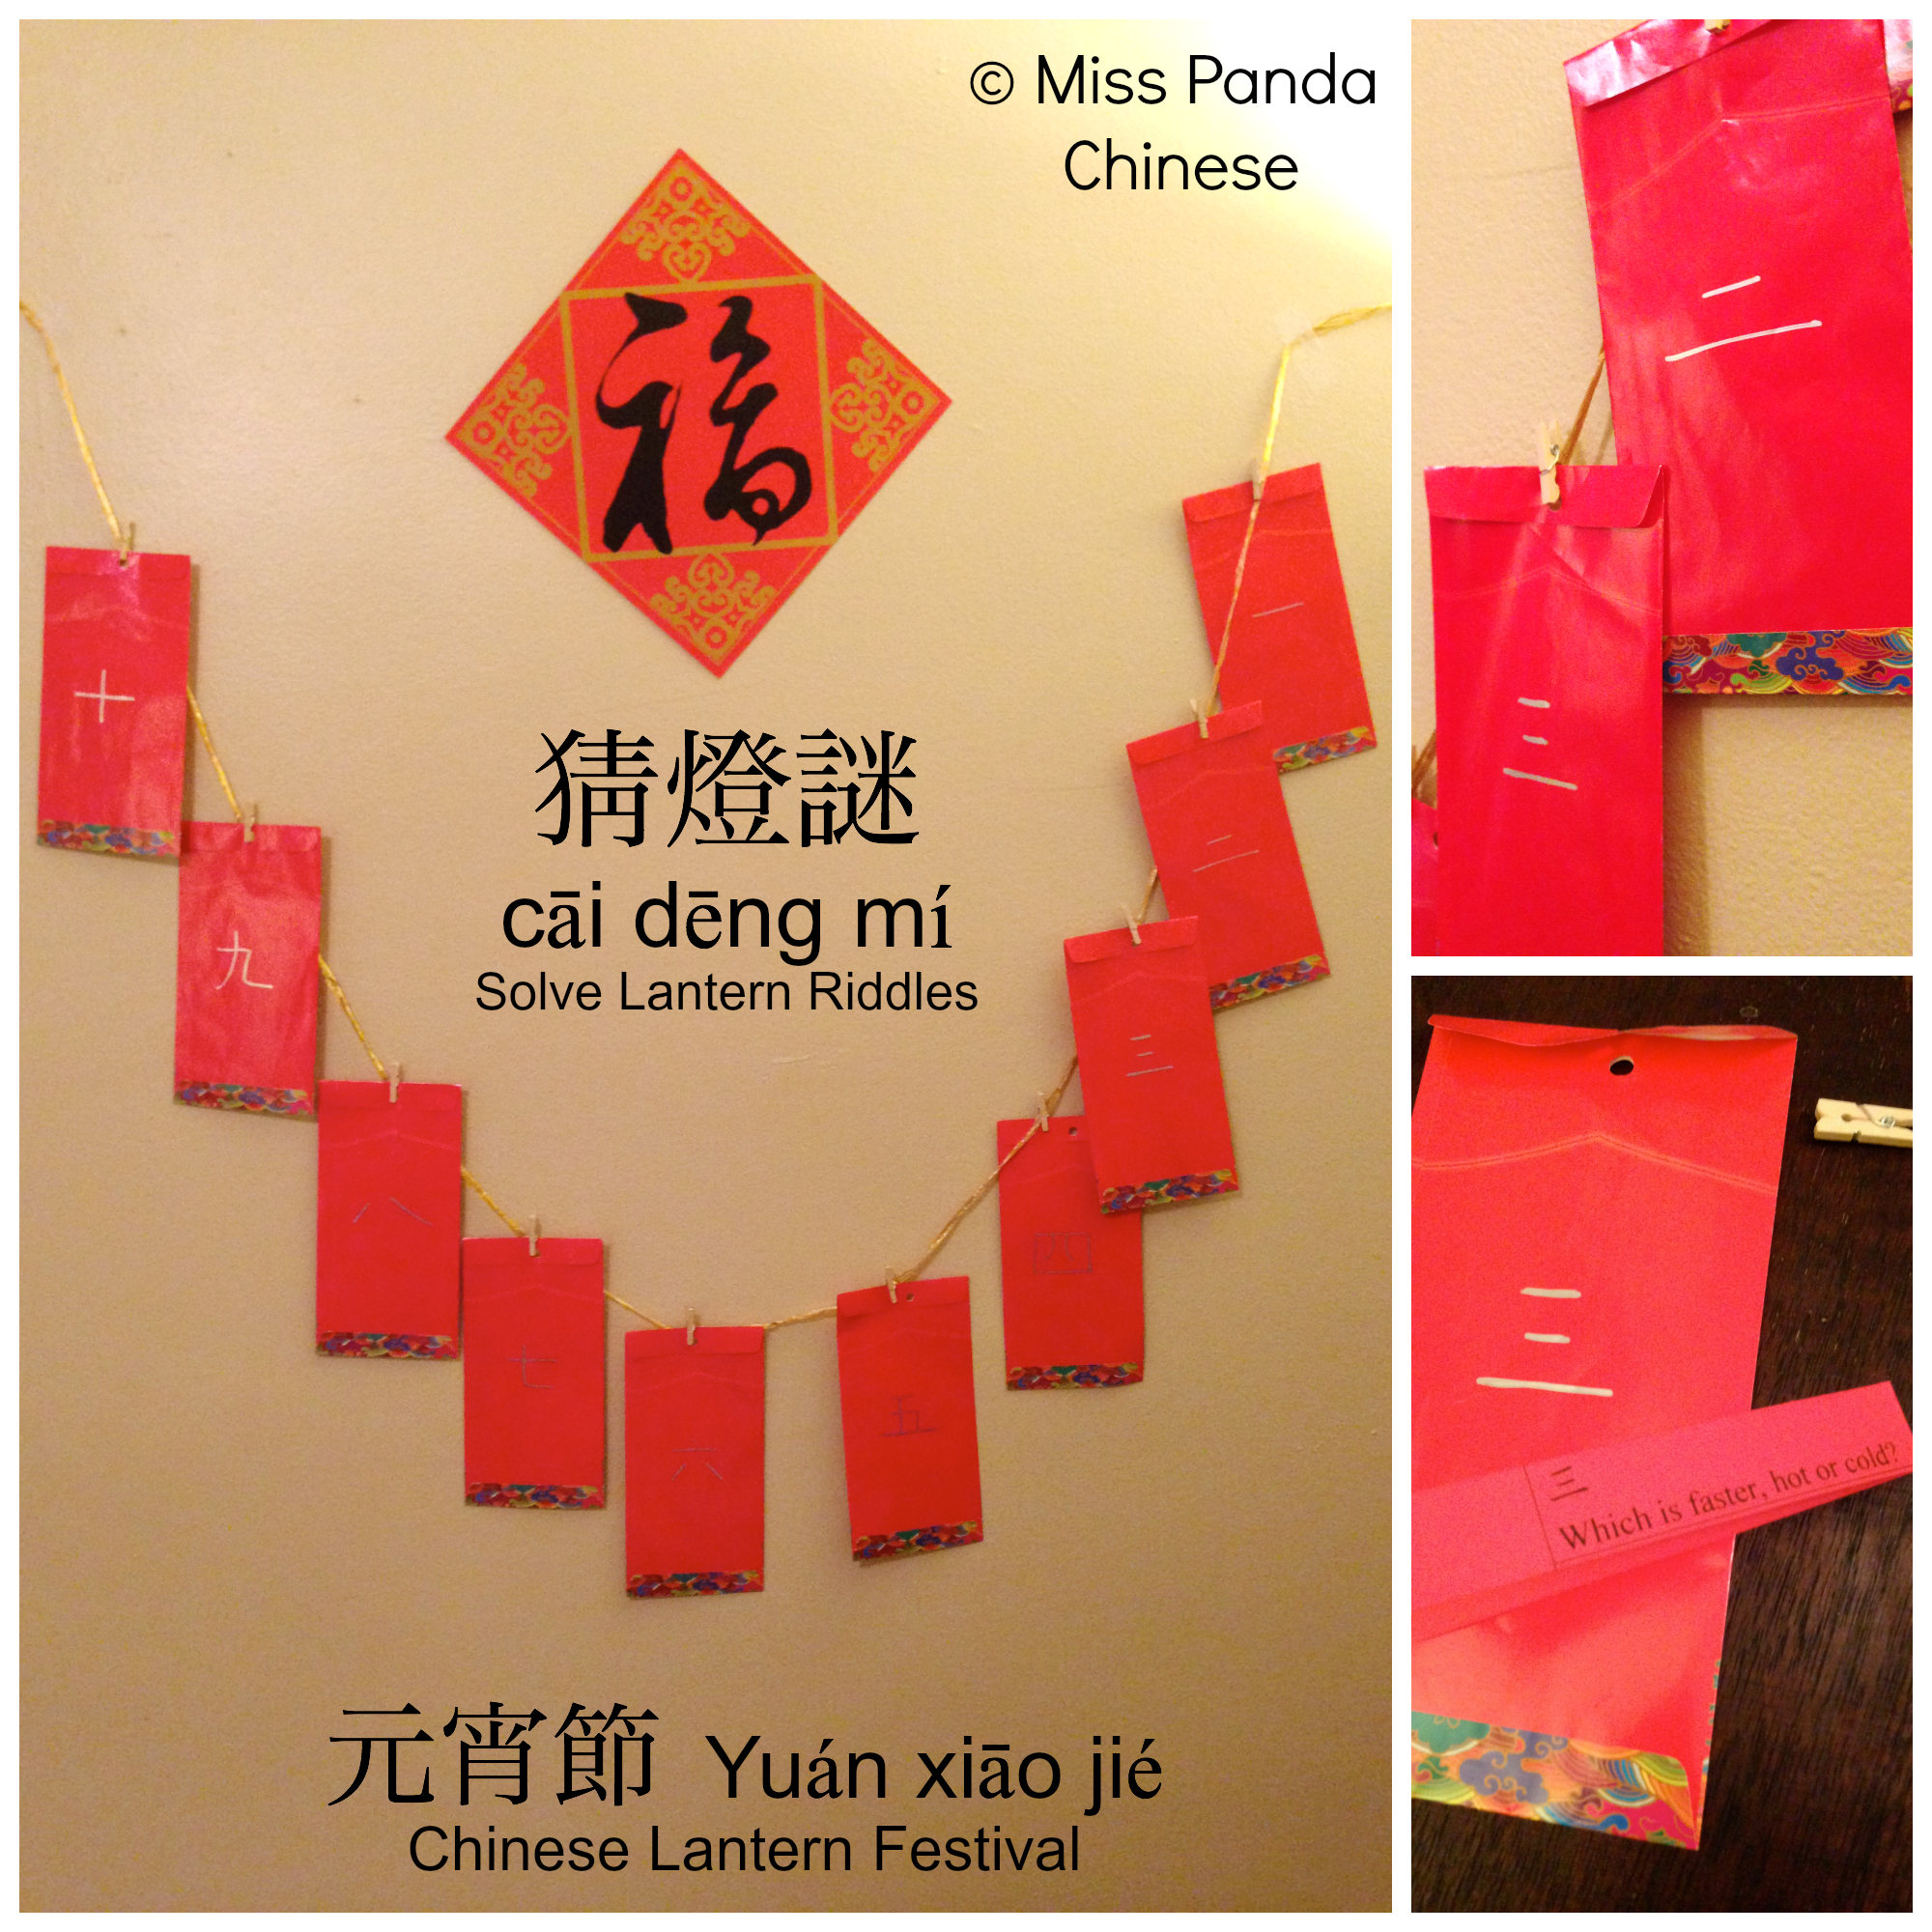 Miss Panda Chinese - Lantern Festival Riddle Game